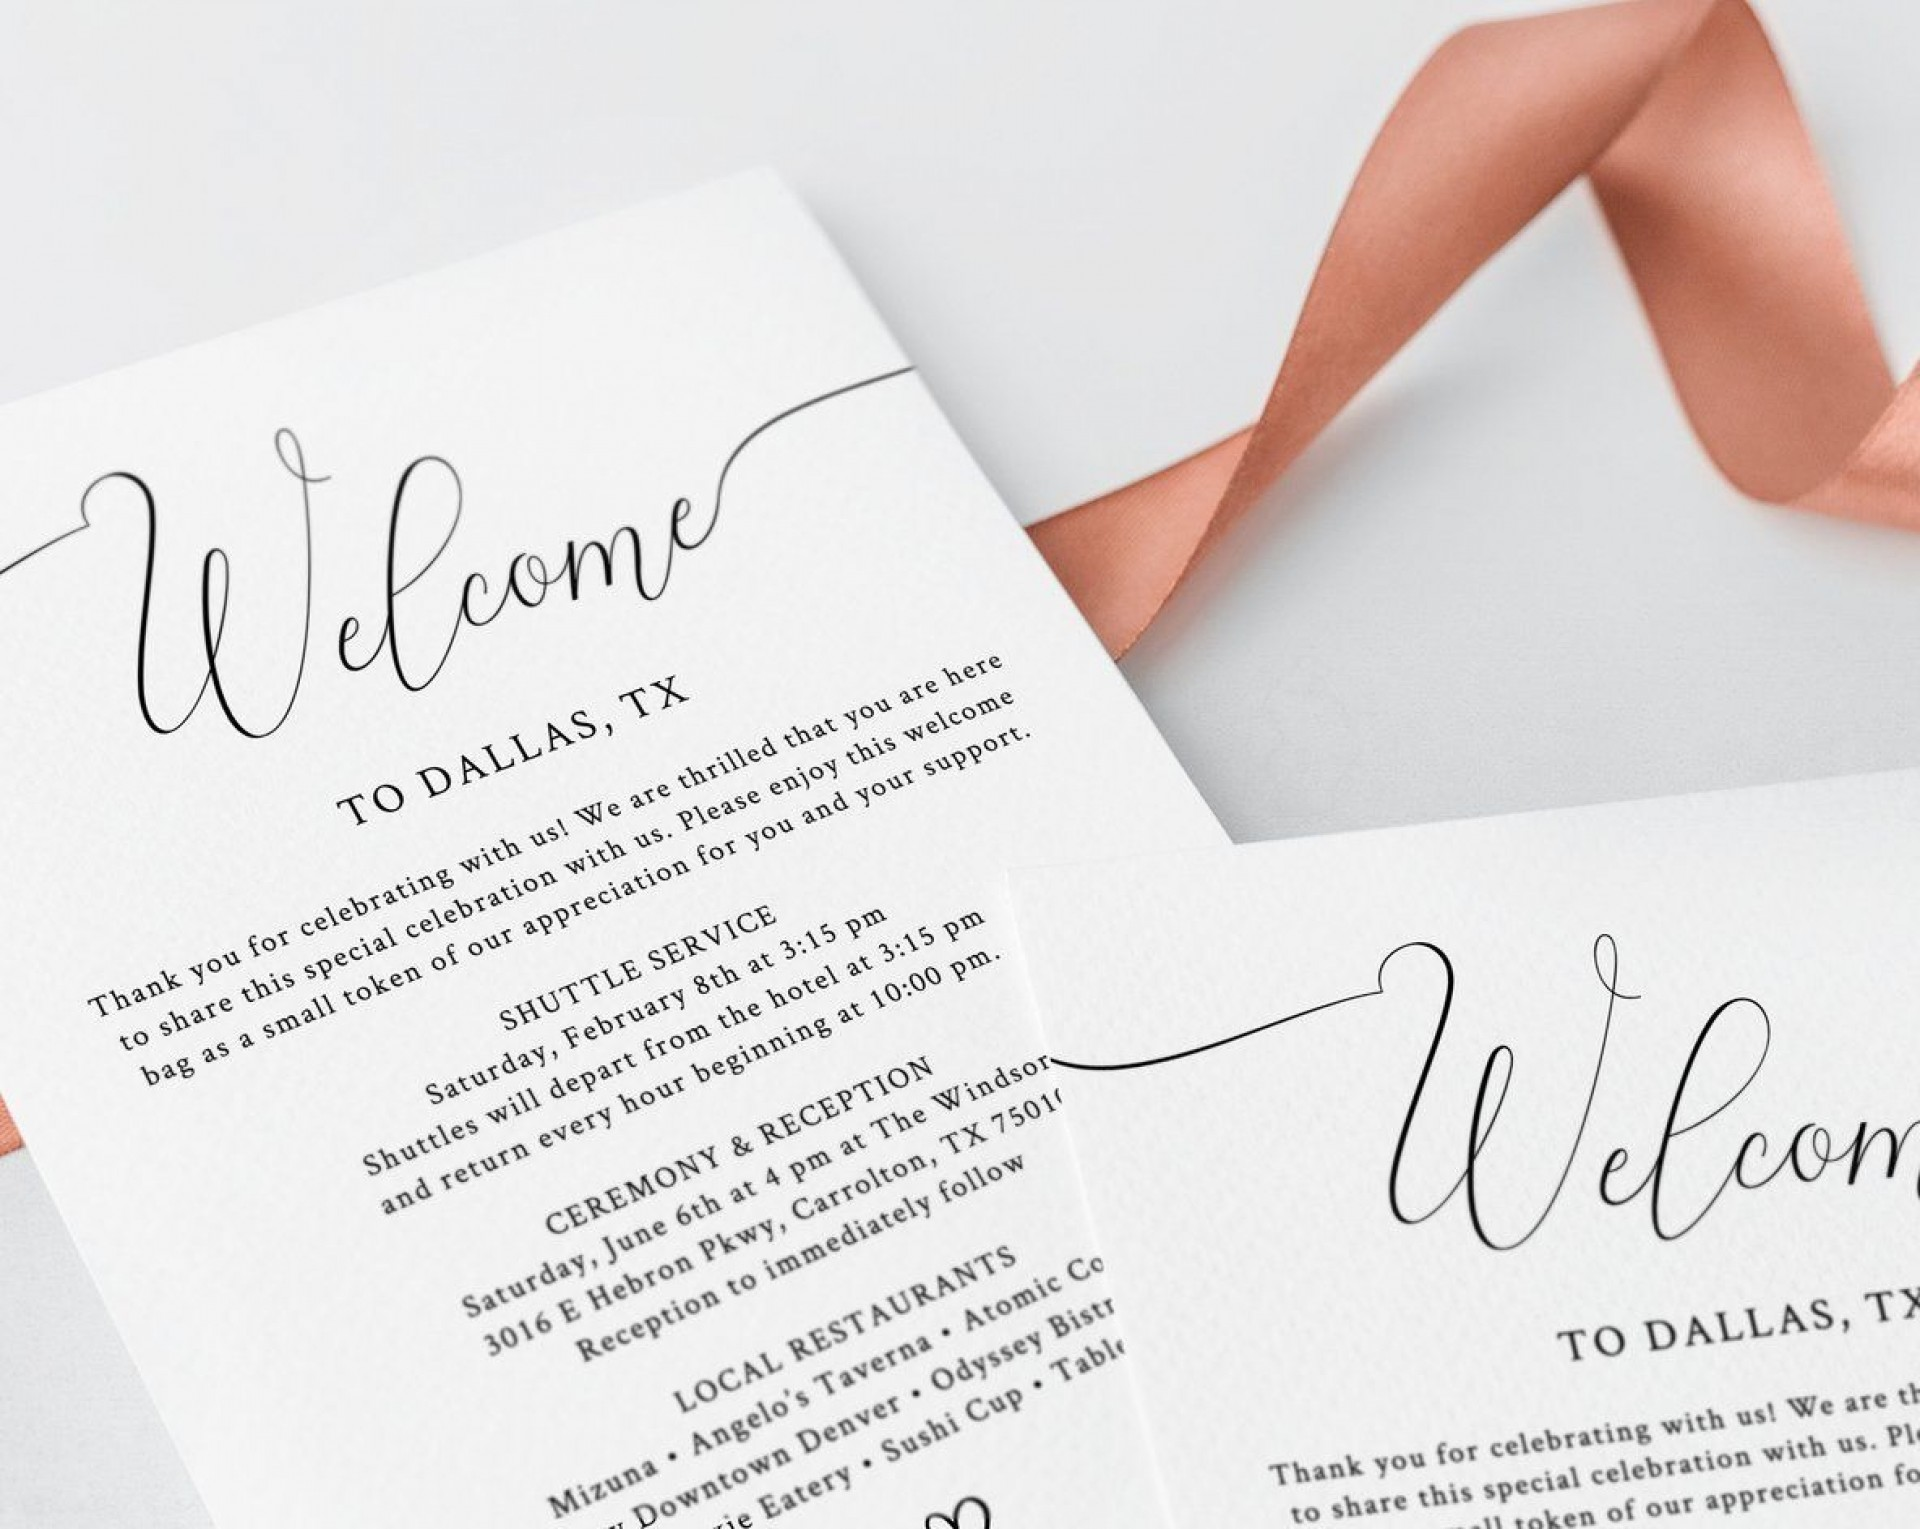 003 Phenomenal Wedding Hotel Welcome Letter Template Idea 1920